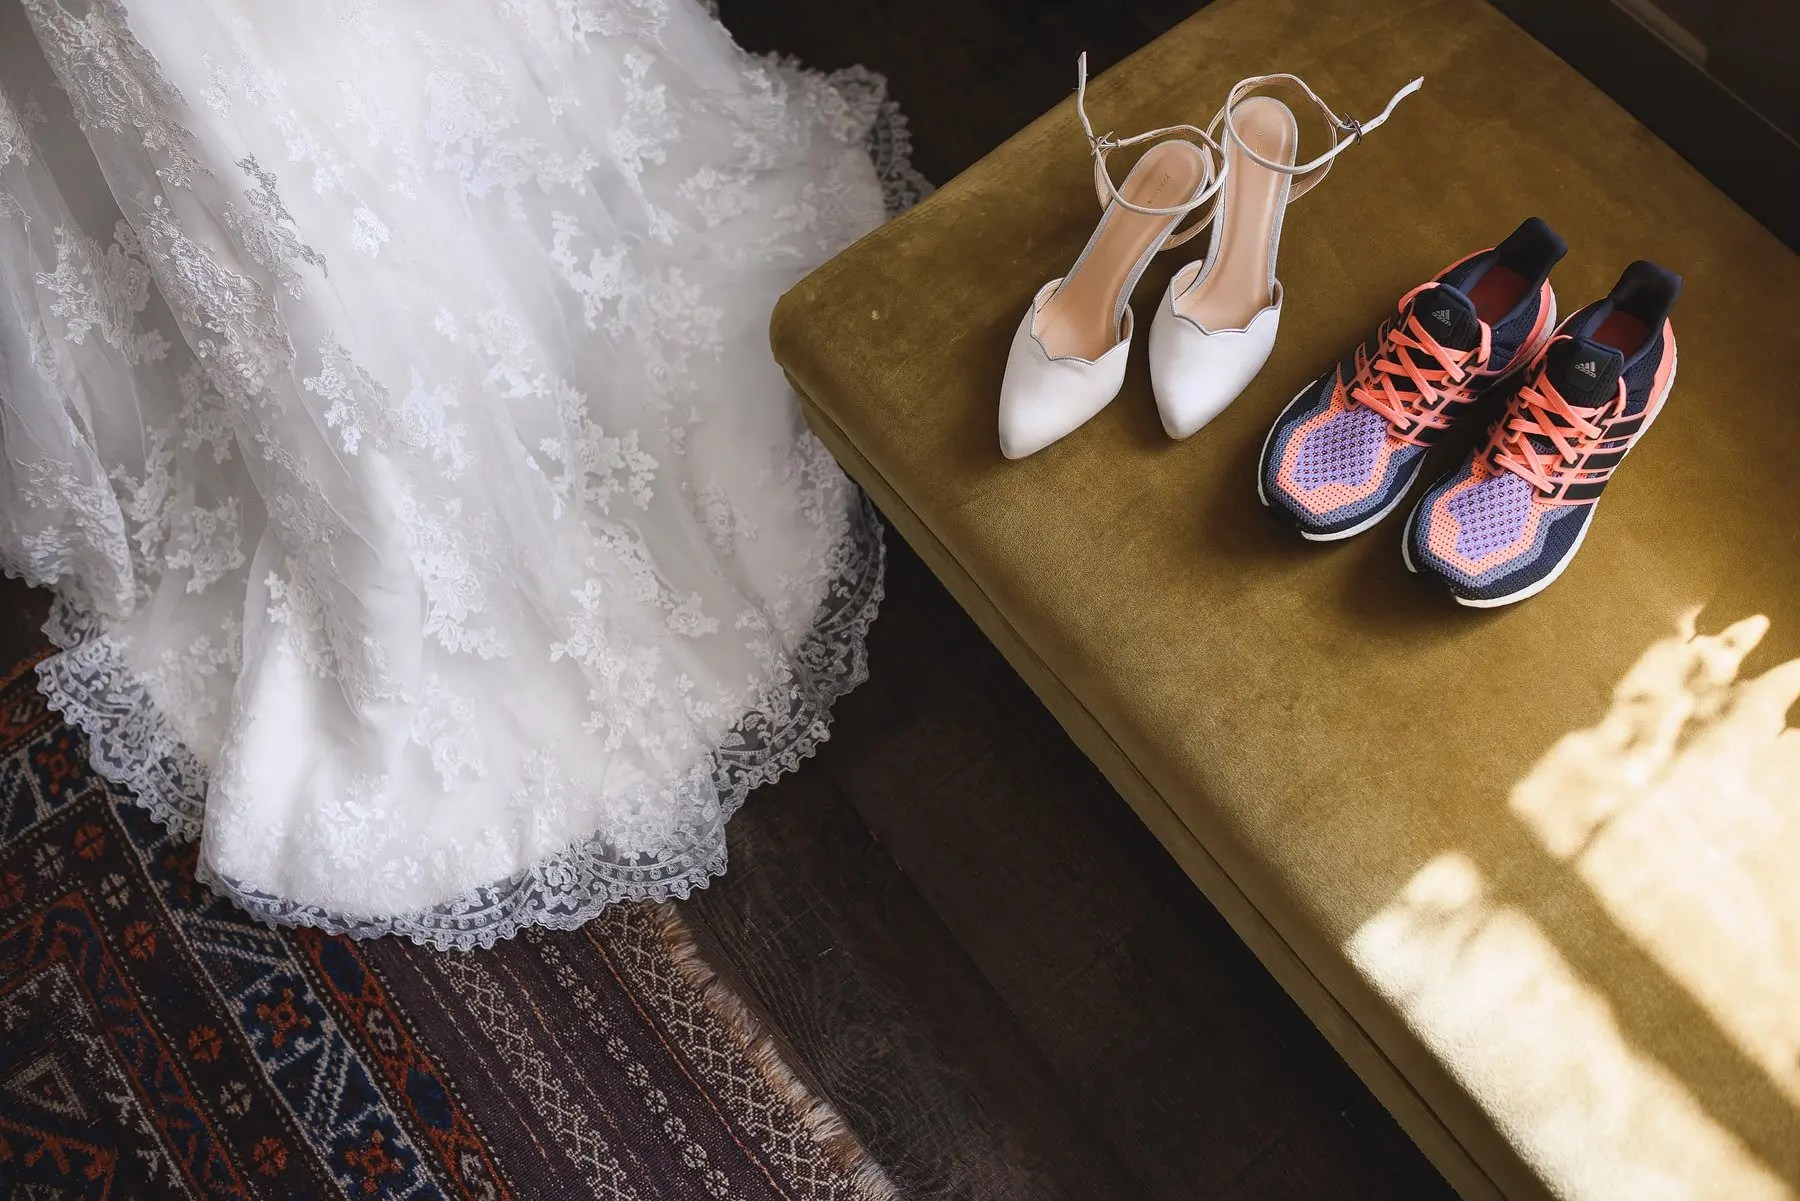 wedding dress and running shoes